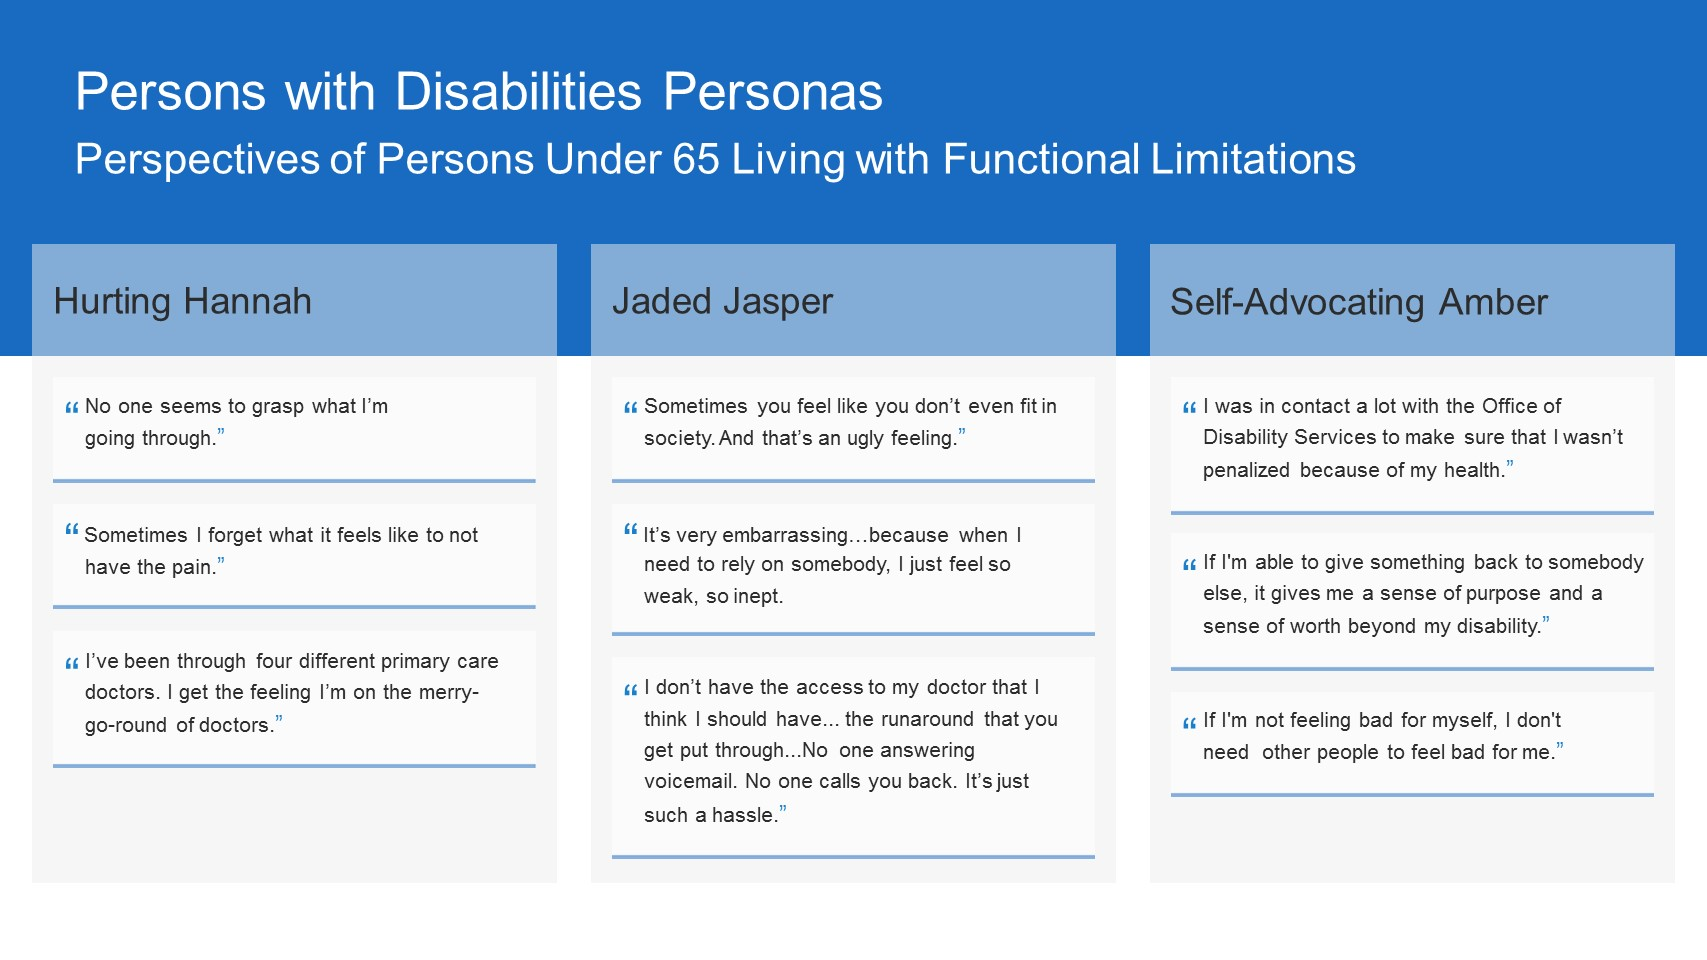 IMPORTED: __media_images_blog_2016_dec_hnhc_personas_slider_under_65_w_disabilities_slide5.jpg